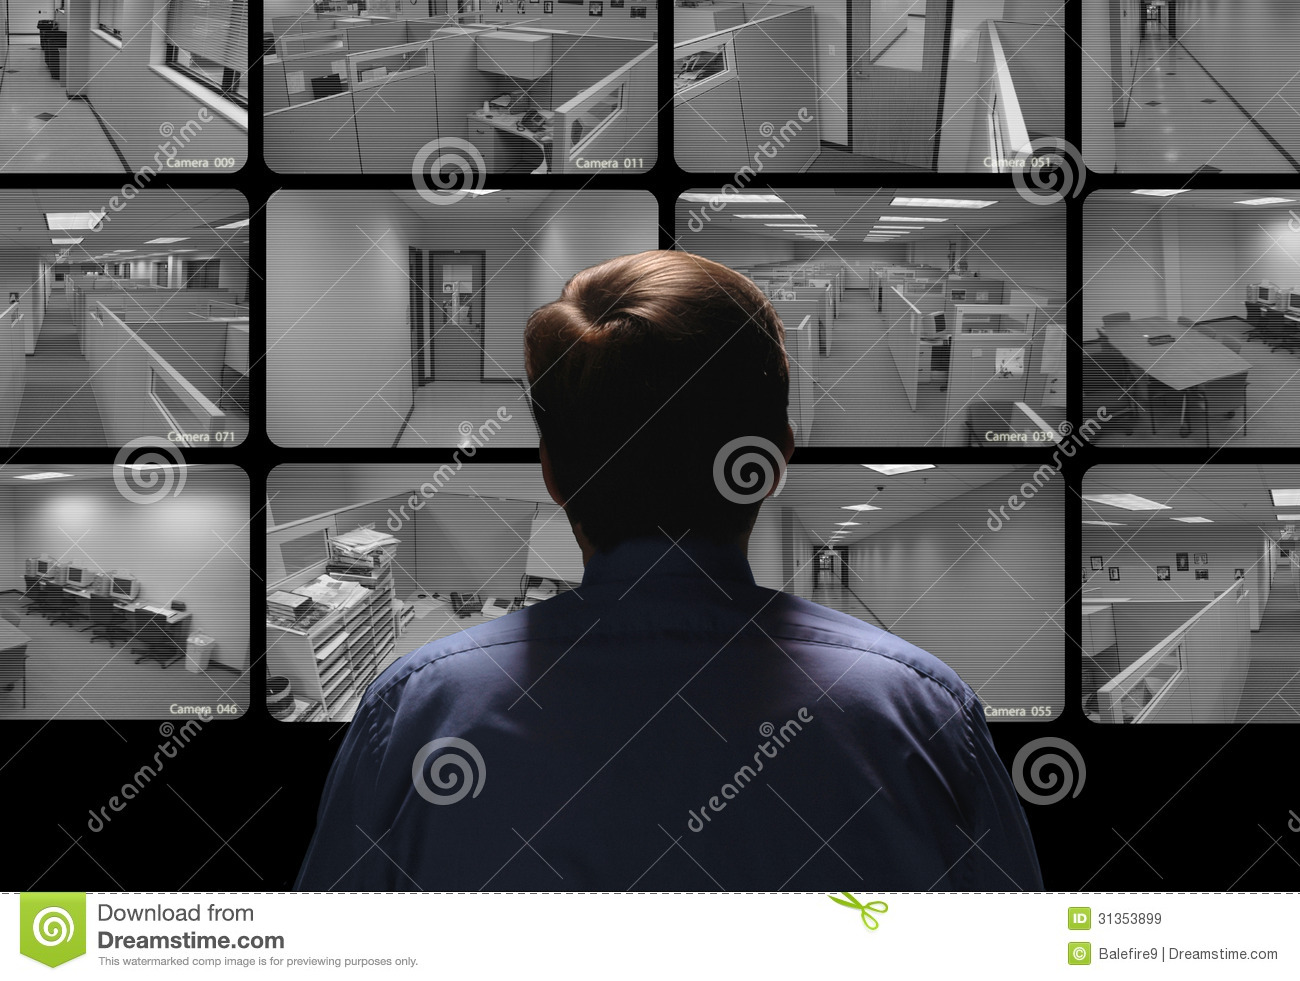 security guard conducting surveillance by watching several secur